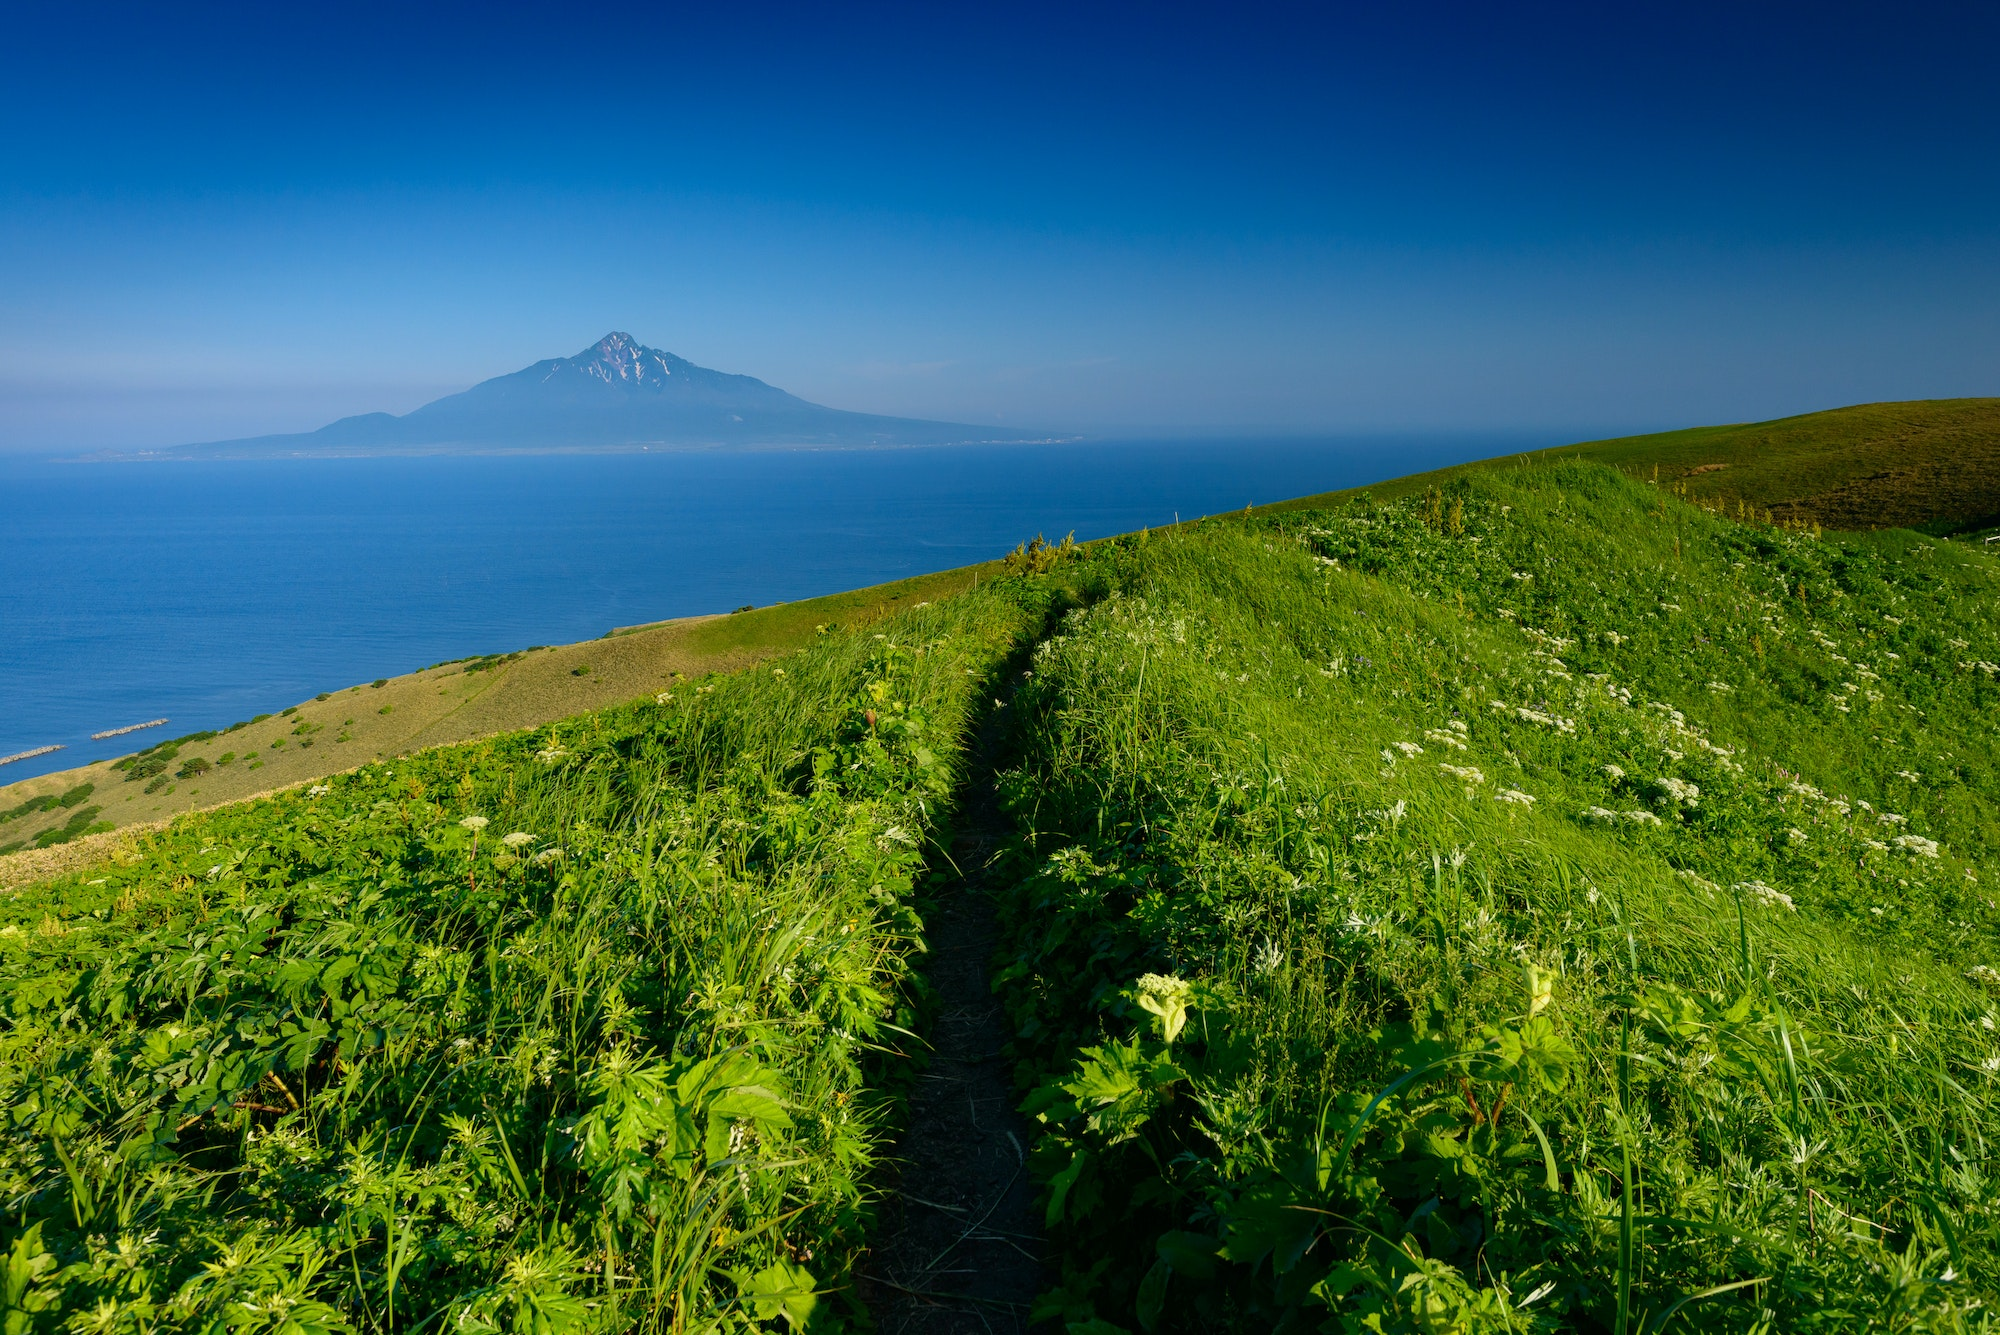 On Rebun Island, native wildflowers are in bloom from June to August.